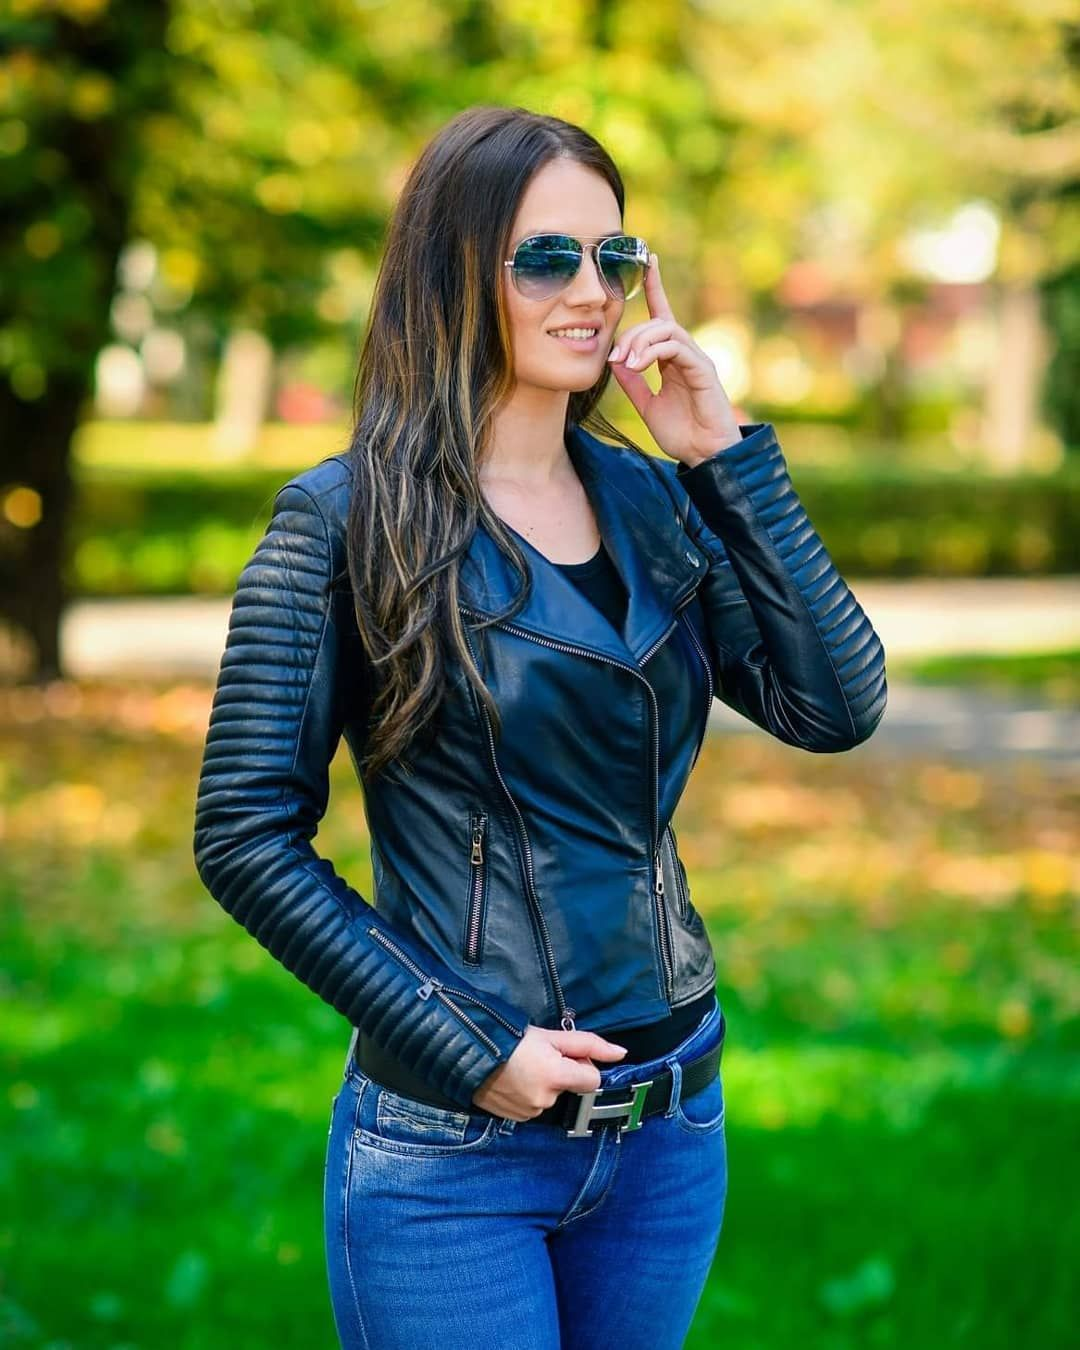 Woman In Leather Jacket And Jeans Leather Jacket Black Leather Jacket Girl Leather Outfit [ 1350 x 1080 Pixel ]